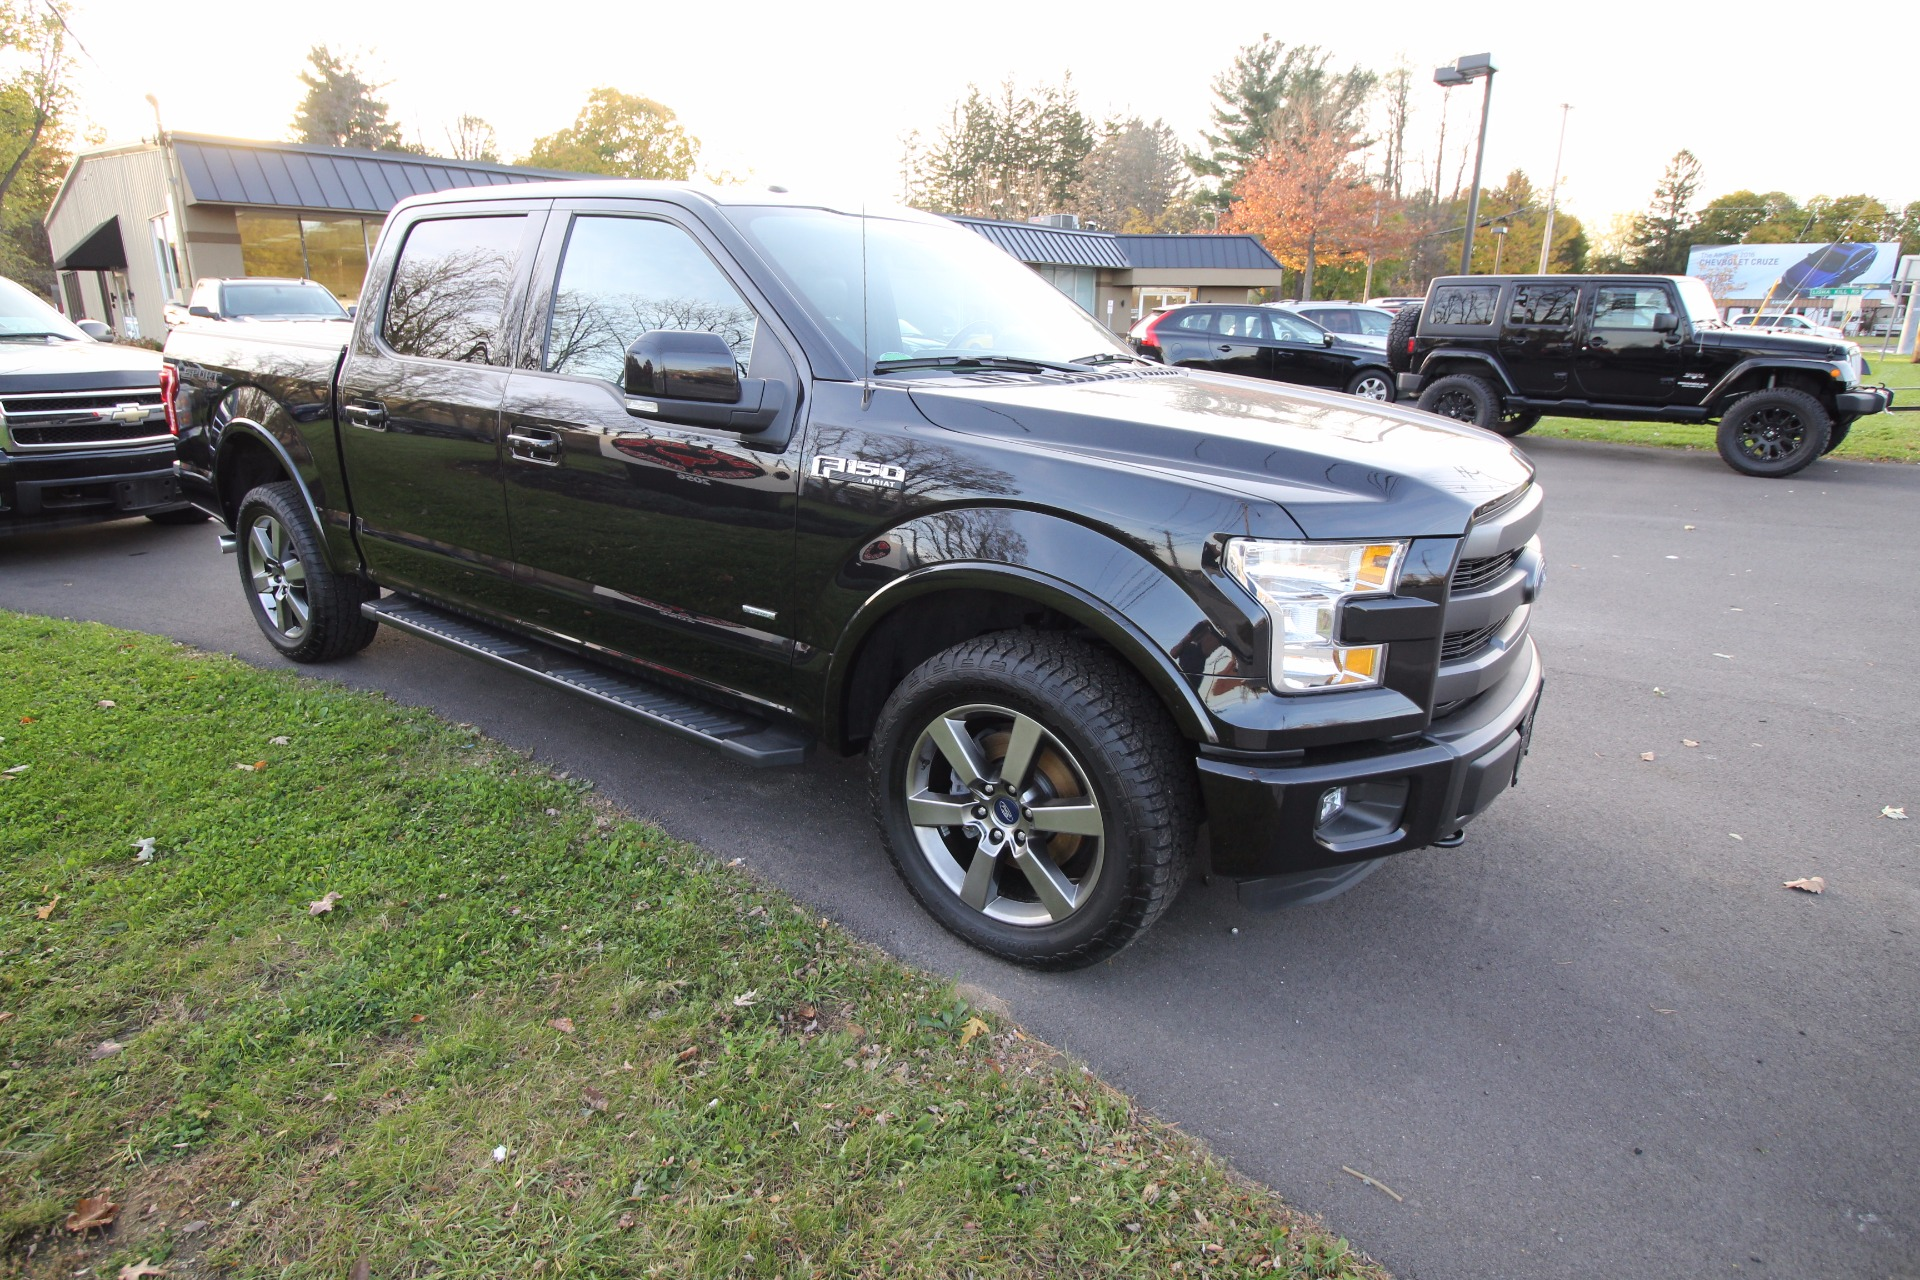 2015 ford f 150 lariat supercrew 5 5 ft bed 4wd stock 16236 for sale near albany ny ny. Black Bedroom Furniture Sets. Home Design Ideas